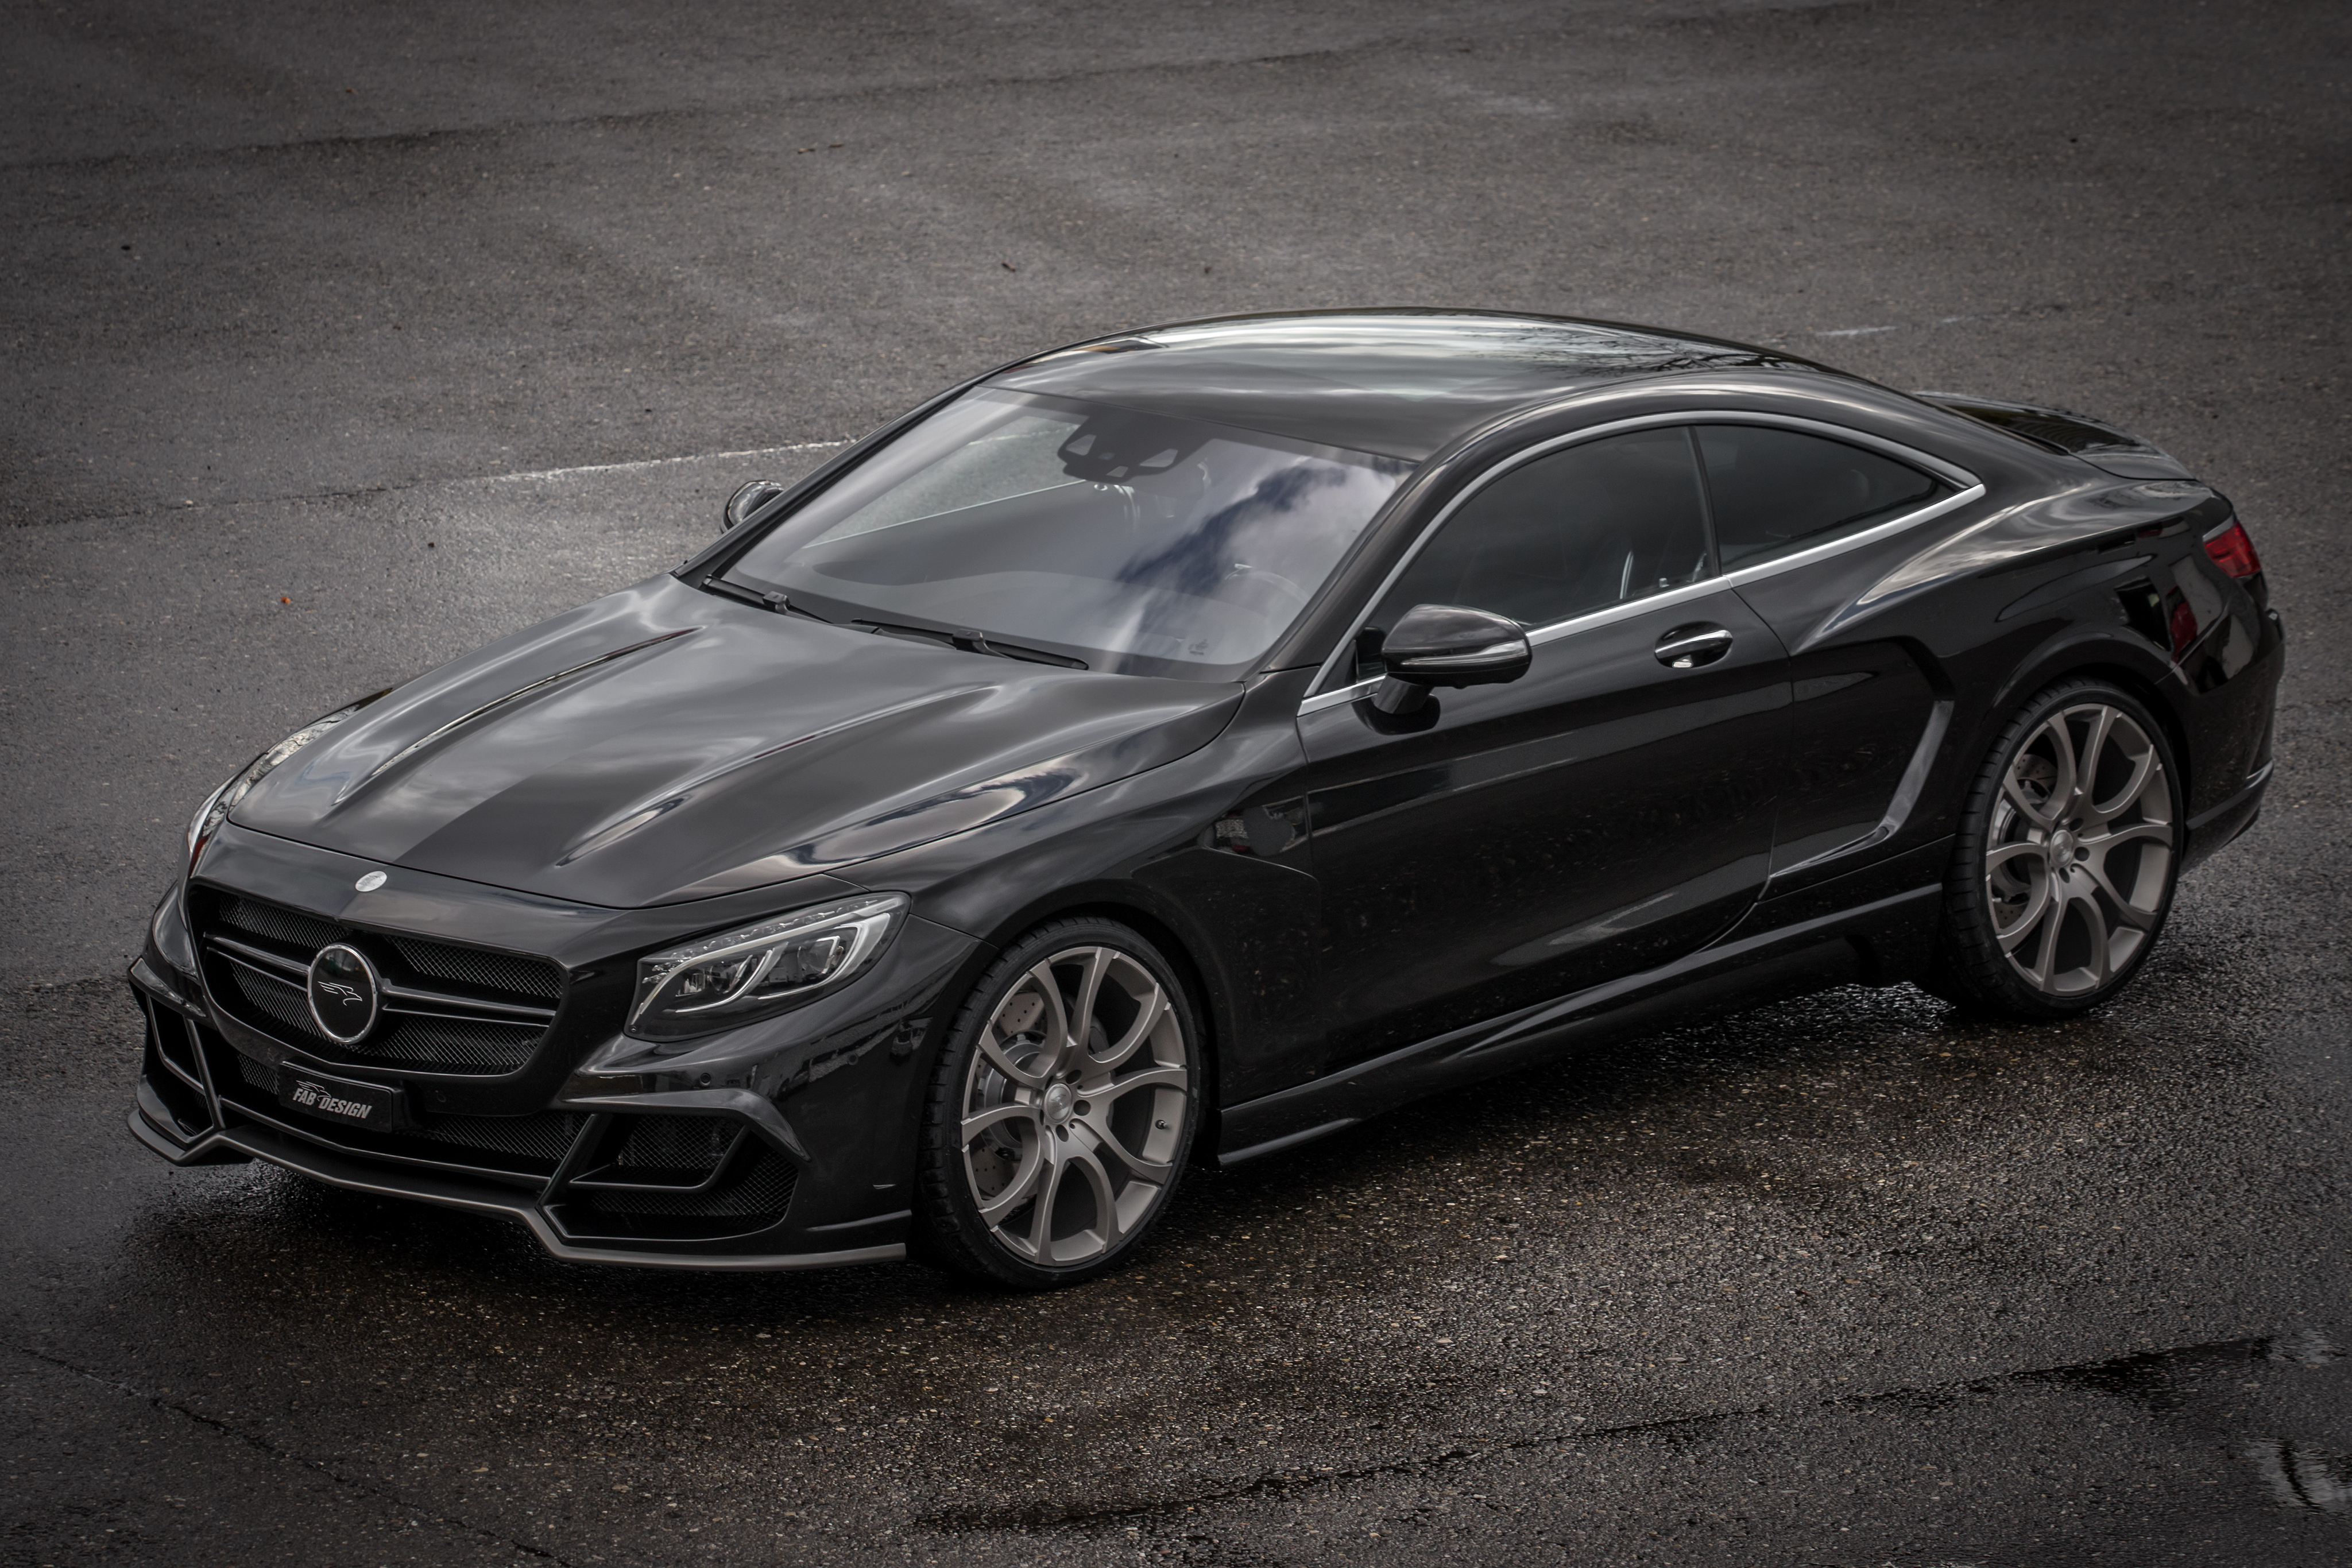 83817 download wallpaper Cars, Mercedes-Benz, Coupe, 2015, C217 screensavers and pictures for free